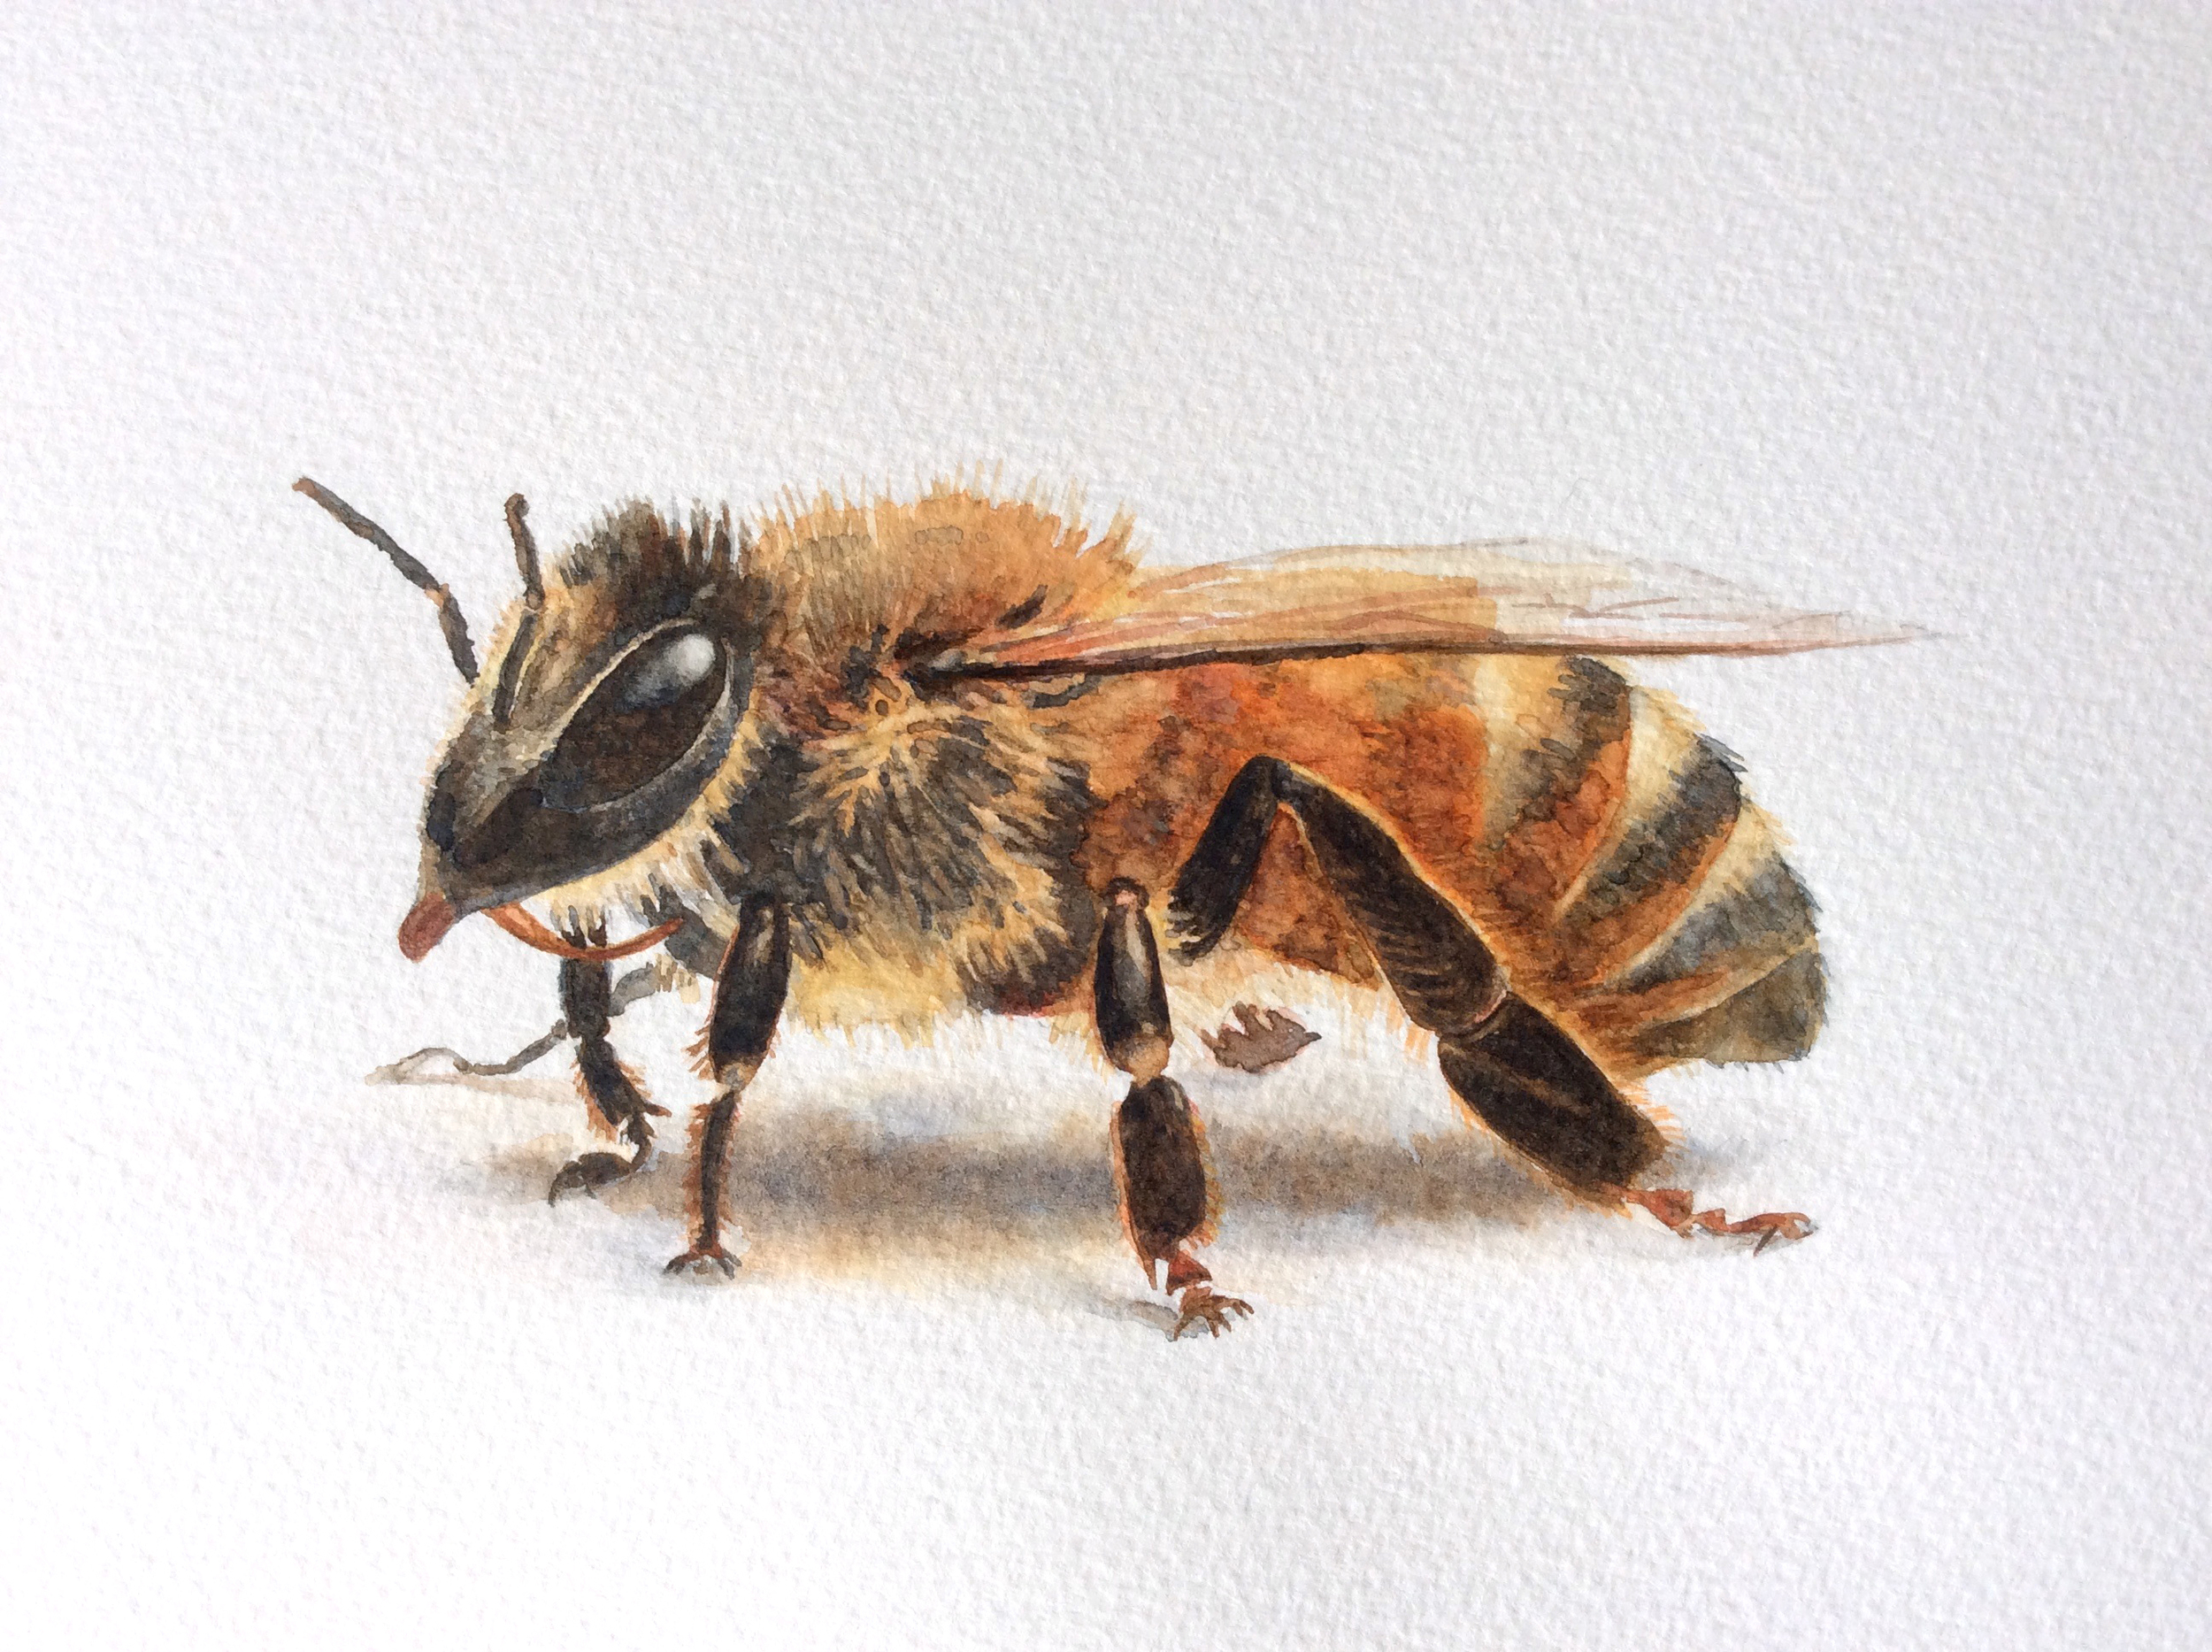 Apis mellifera, the European Honey Bee.